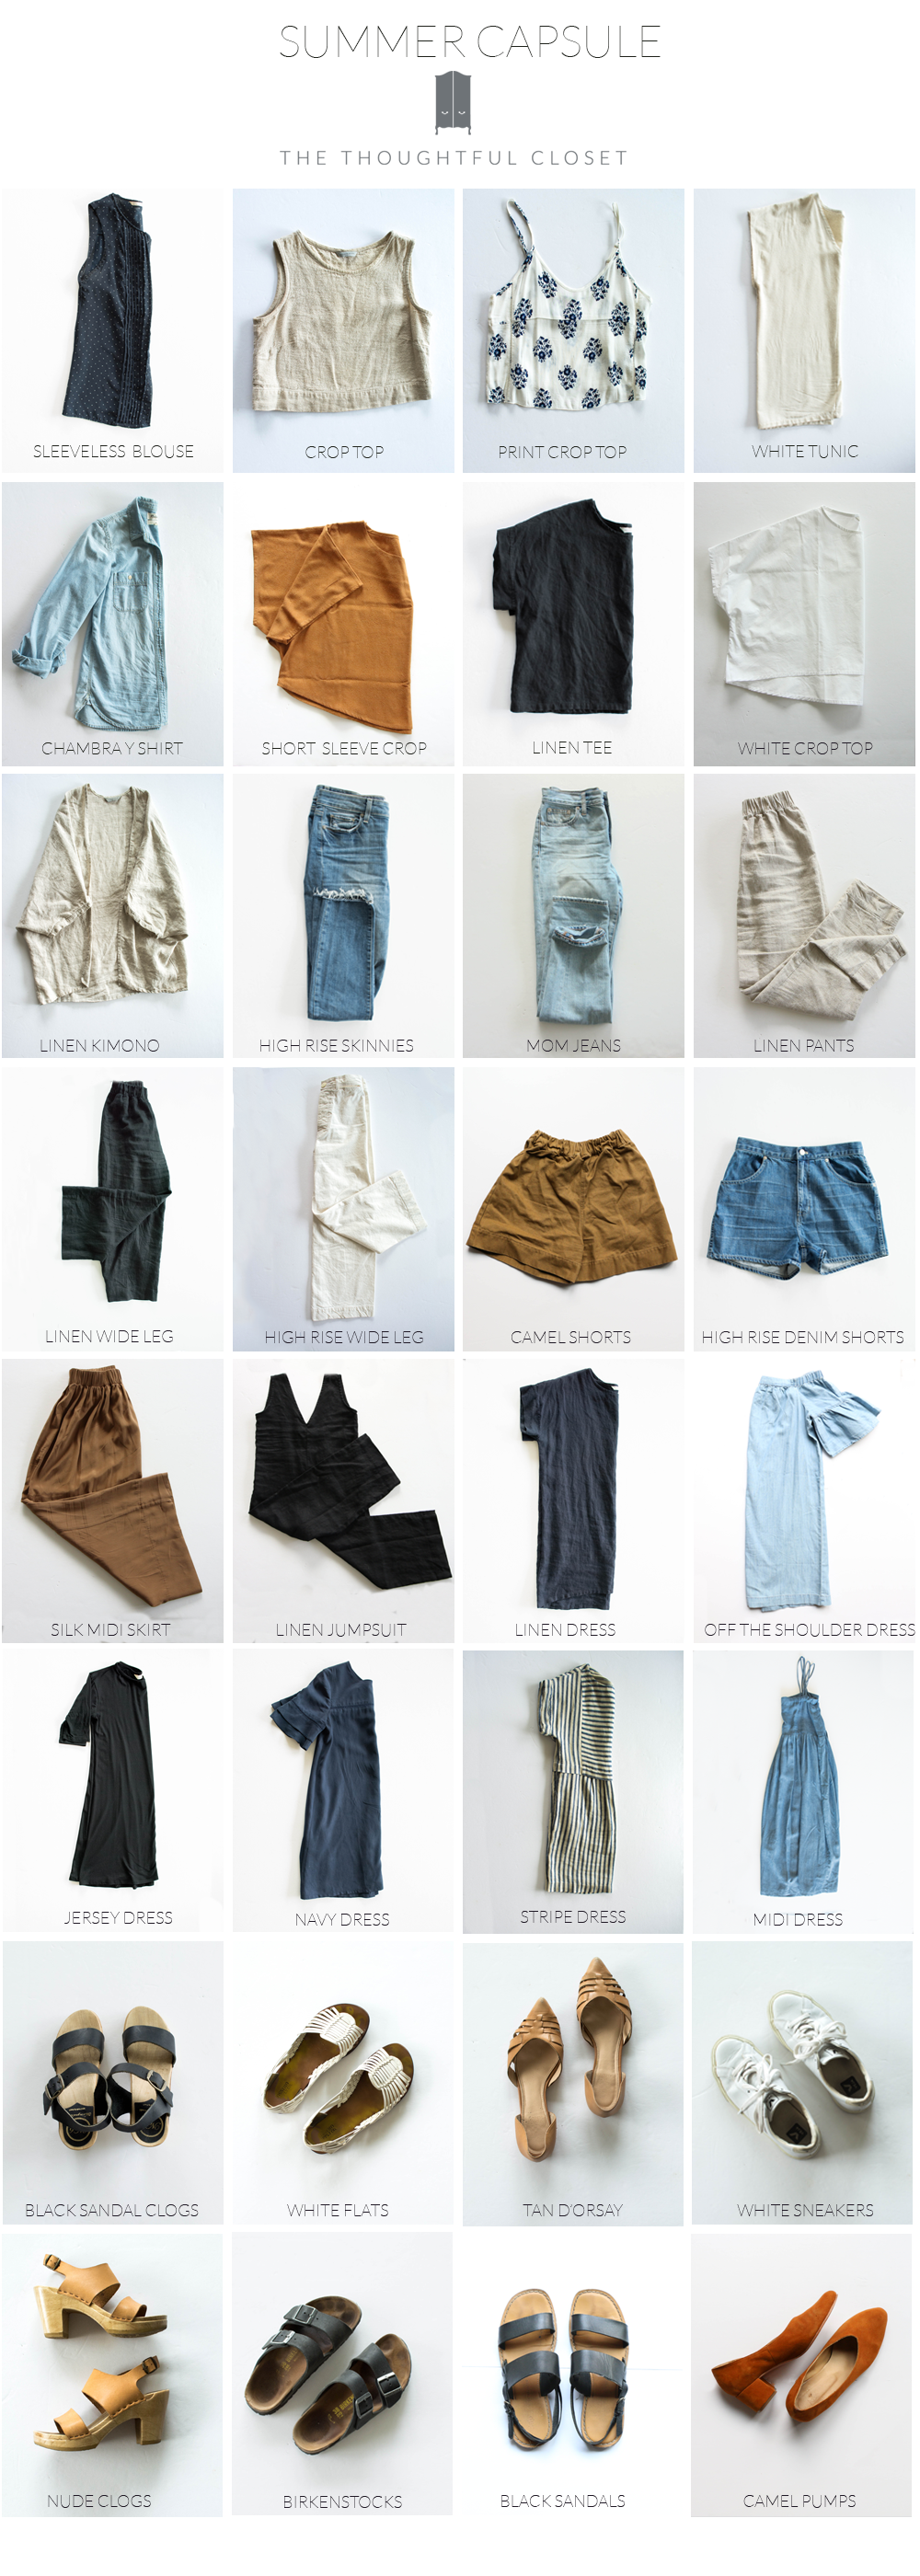 the-thoughtful-closet_summer-capsule-wrap-up.png